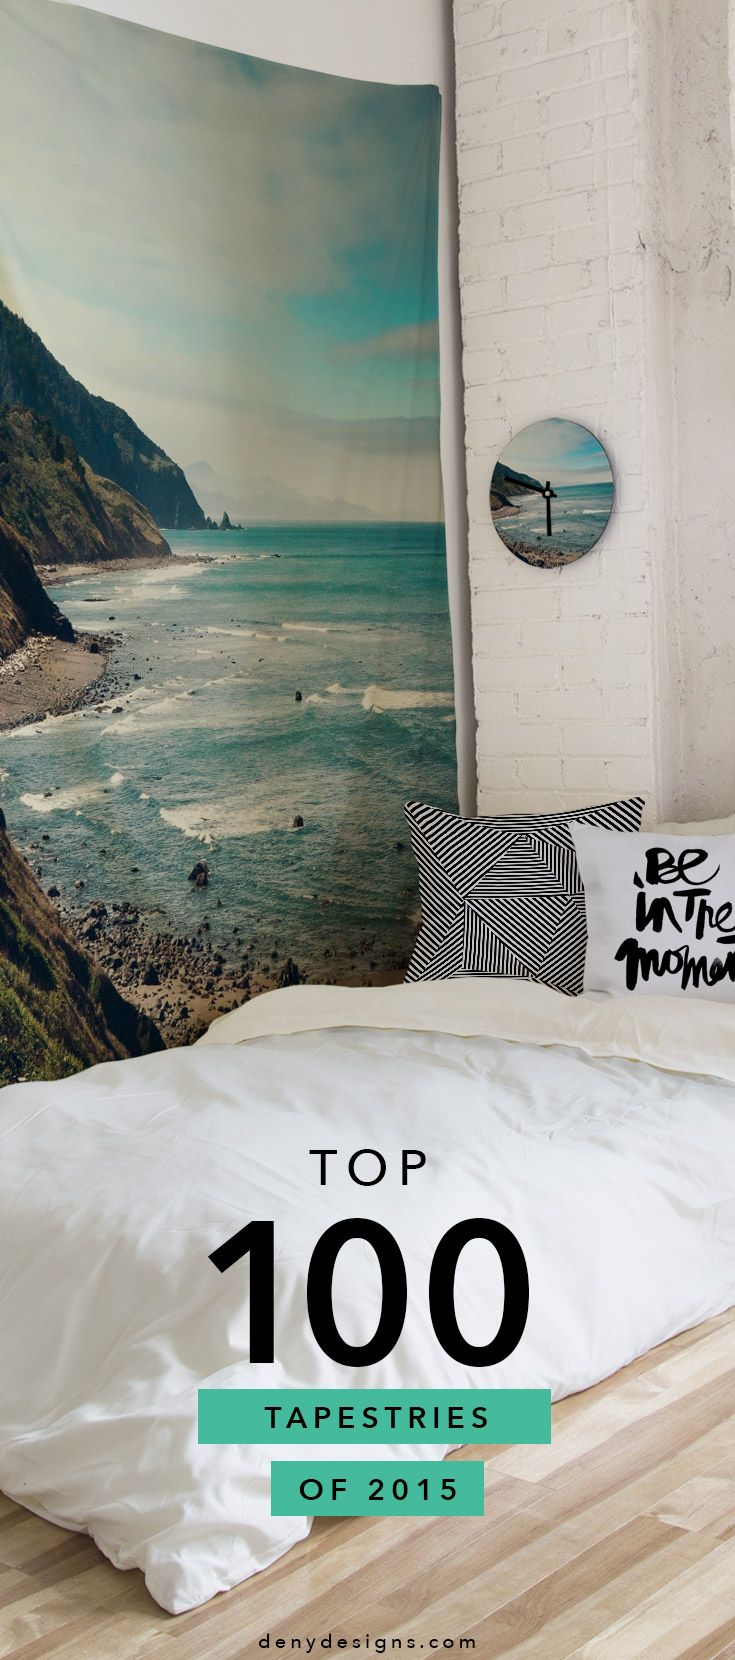 Top Tapestries of 2015